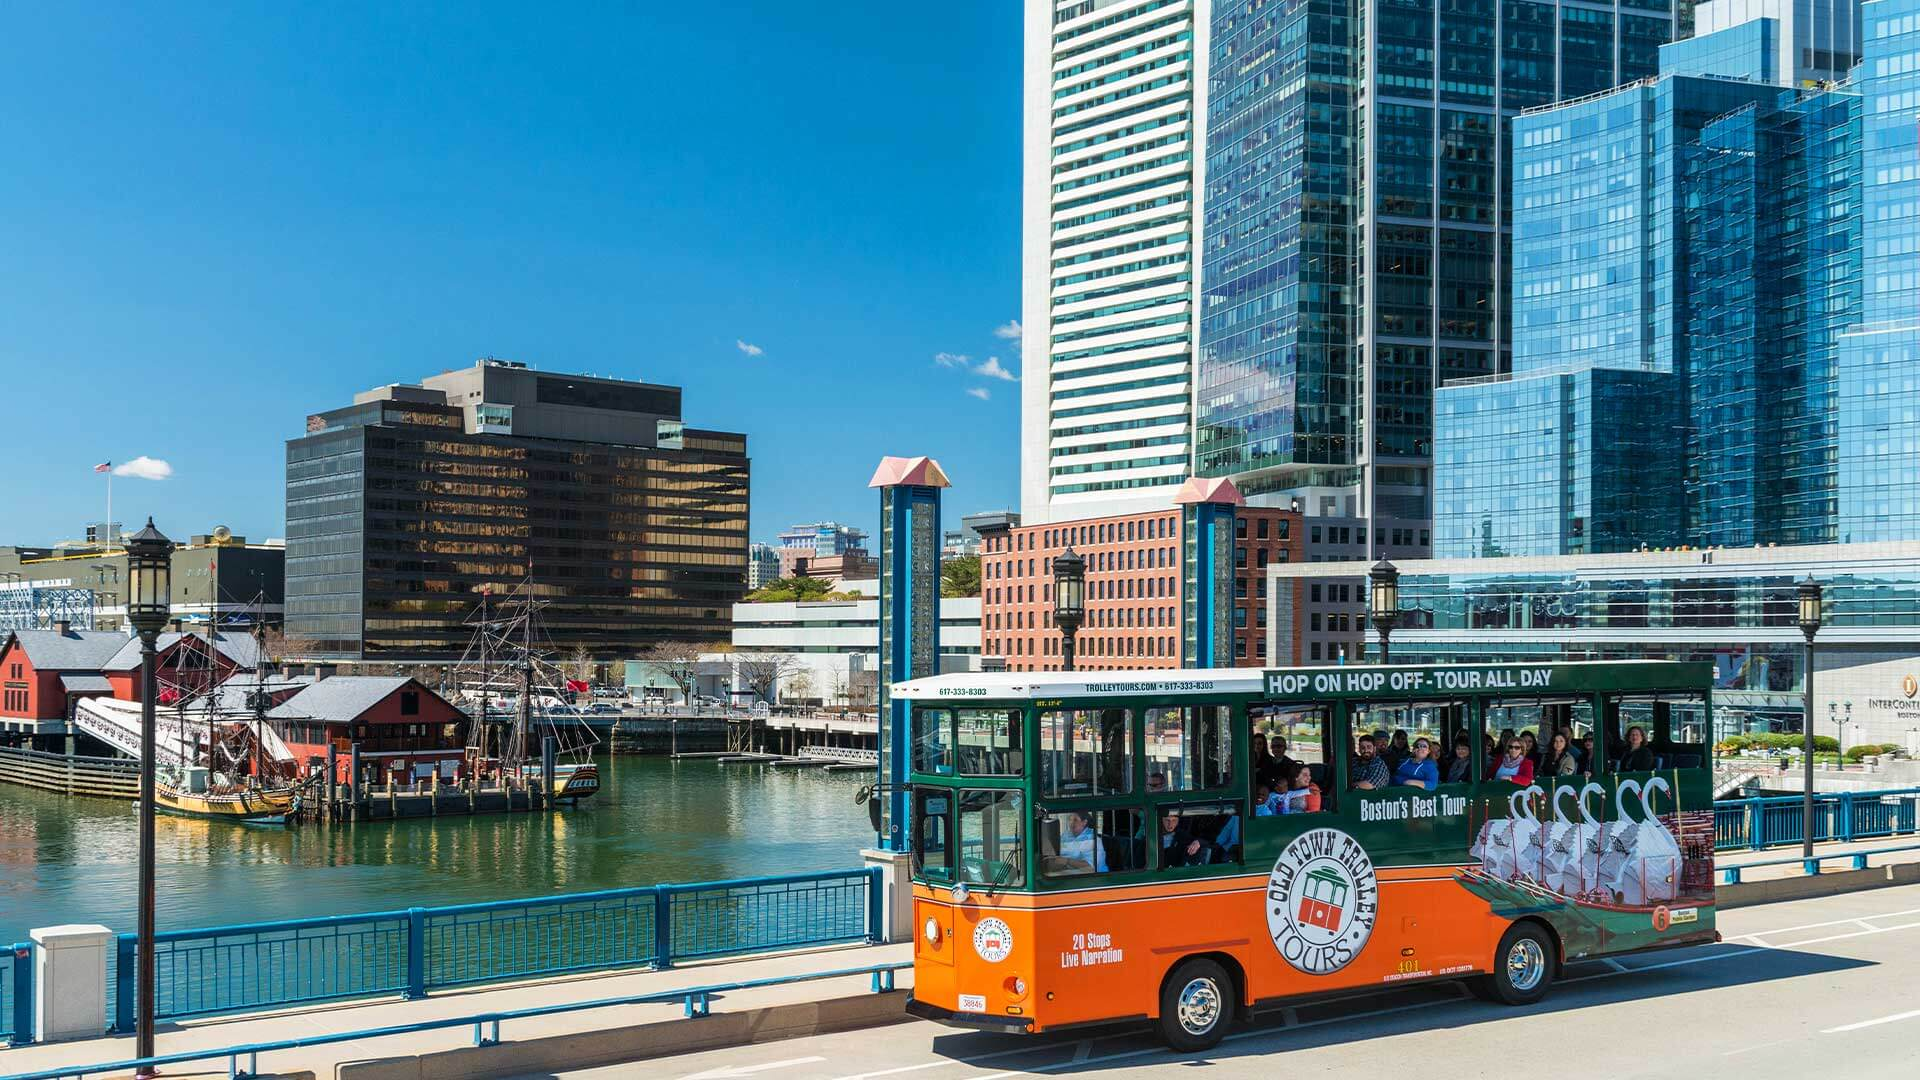 Scenic view of Old Town Trolley in Boston